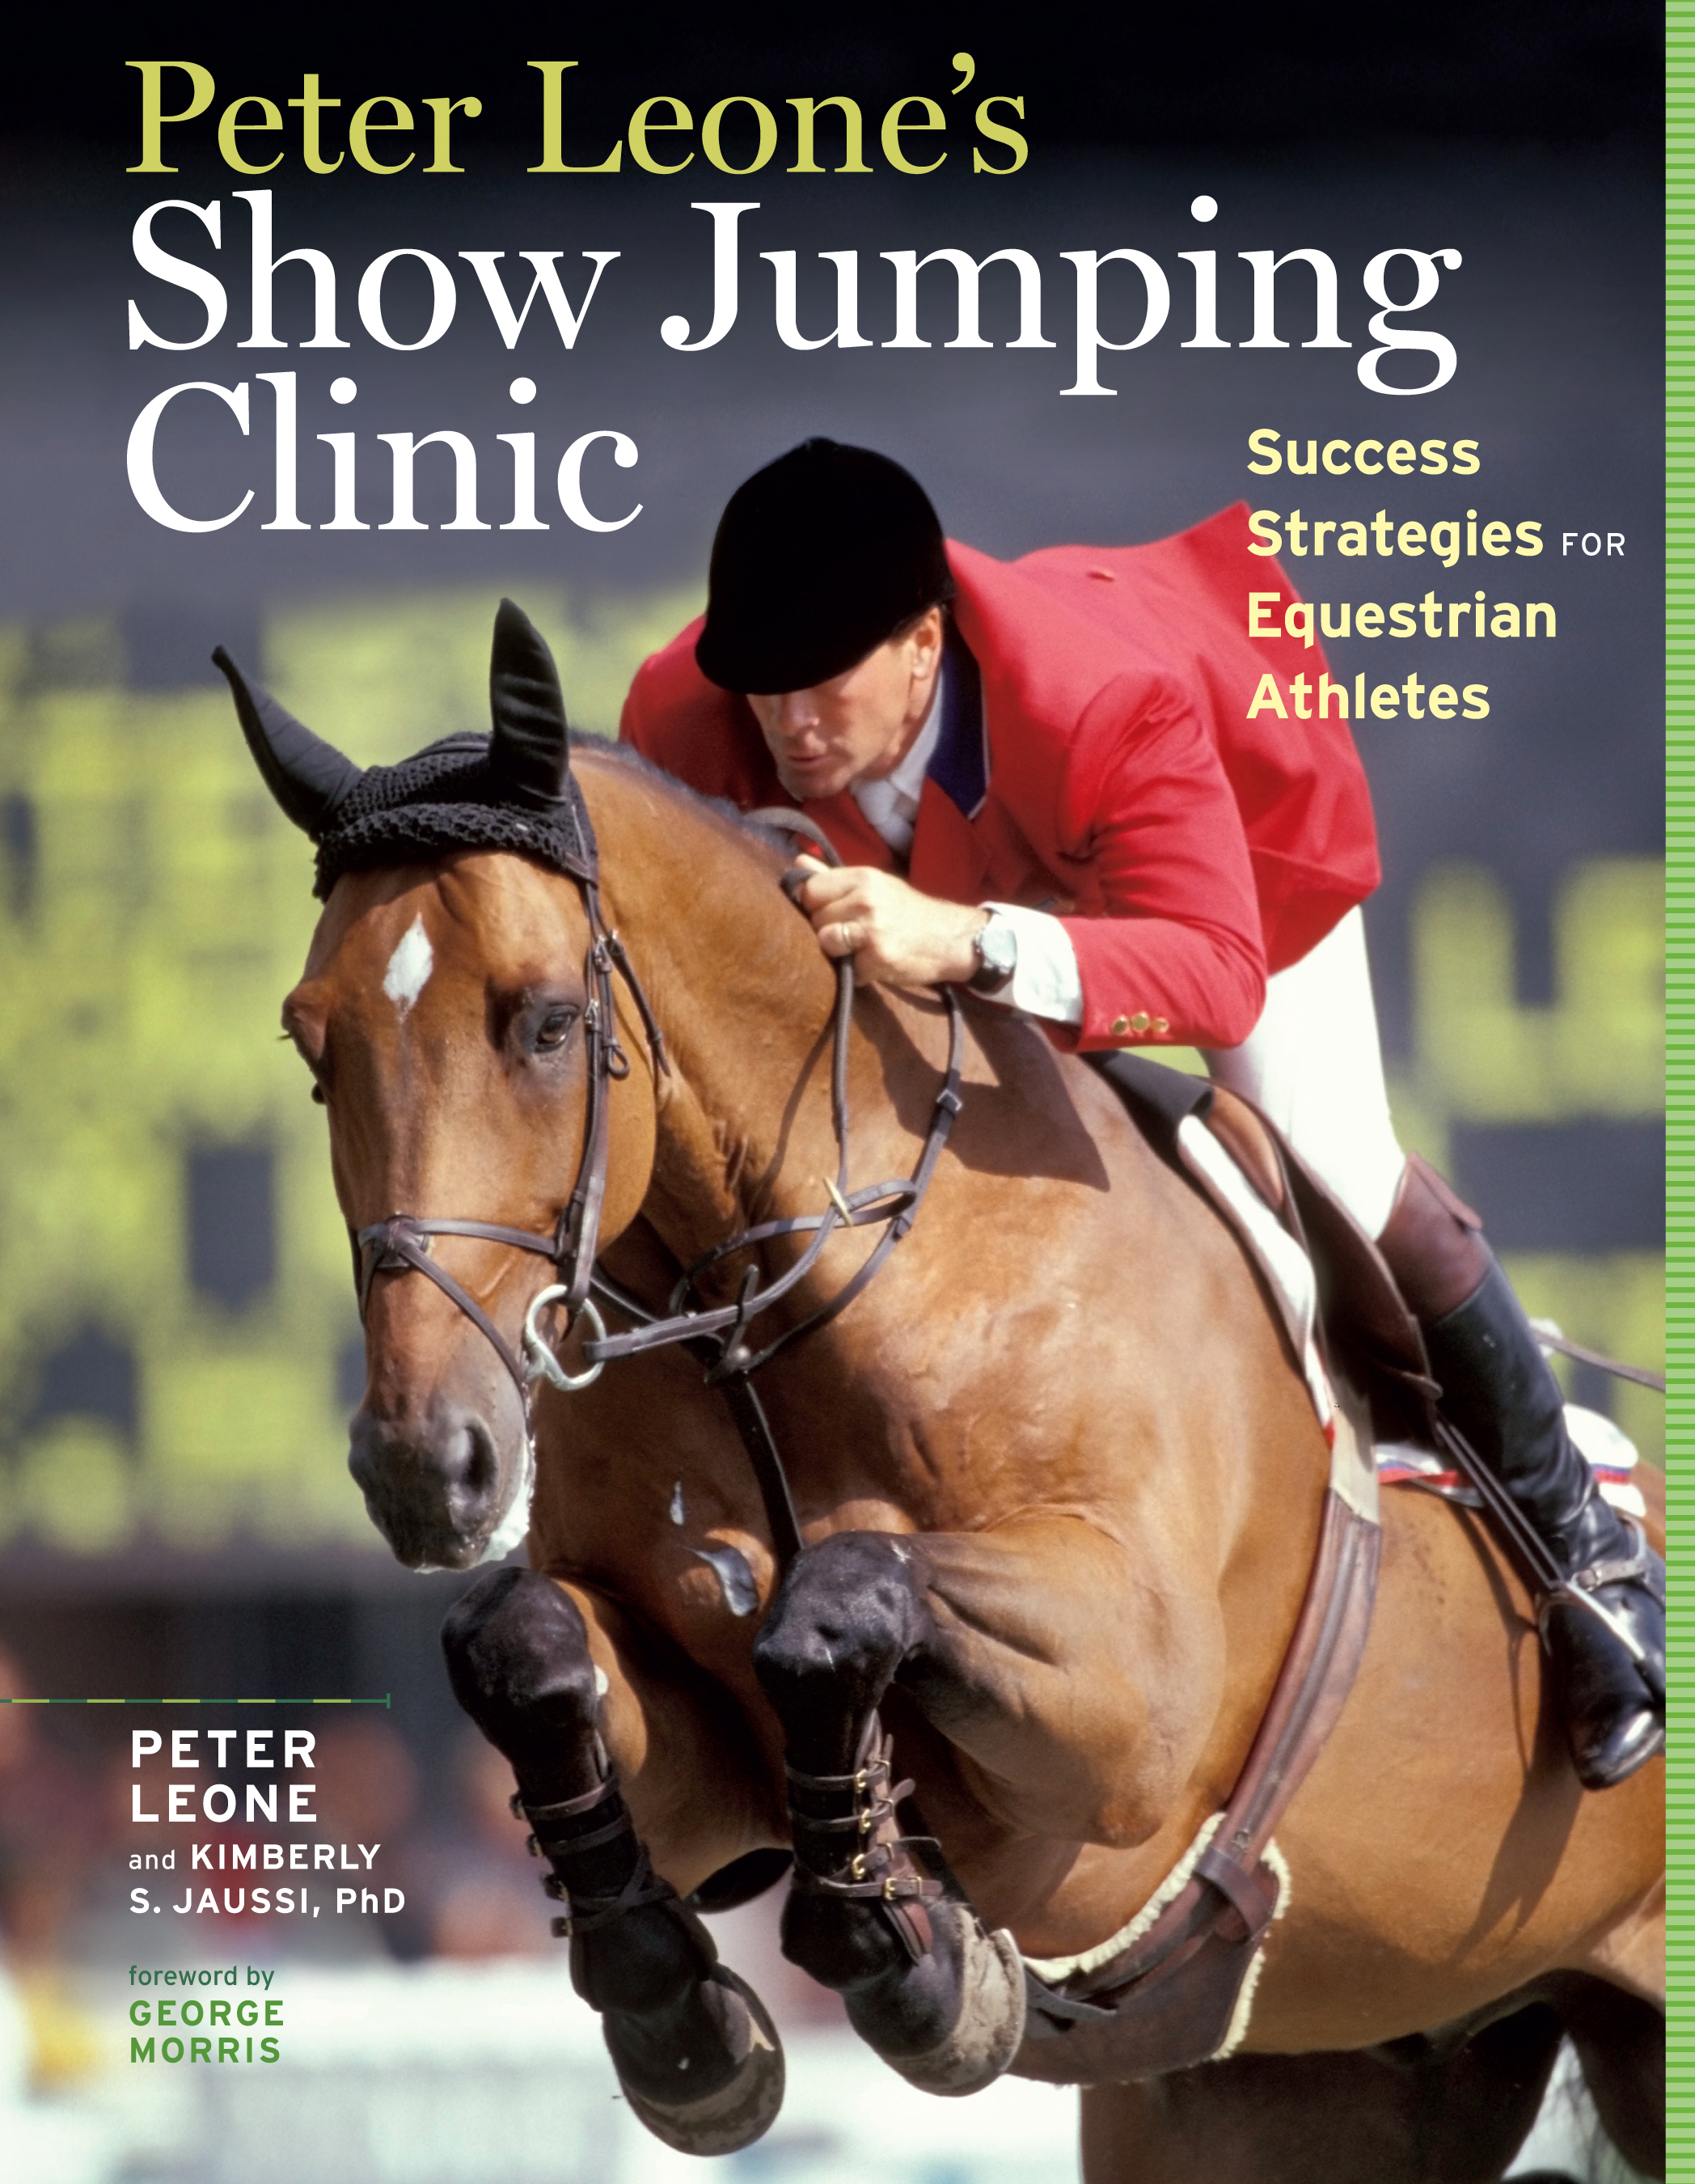 Peter Leone's Show Jumping Clinic Success Strategies for Equestrian Competitors - Kimberly S. Jaussi